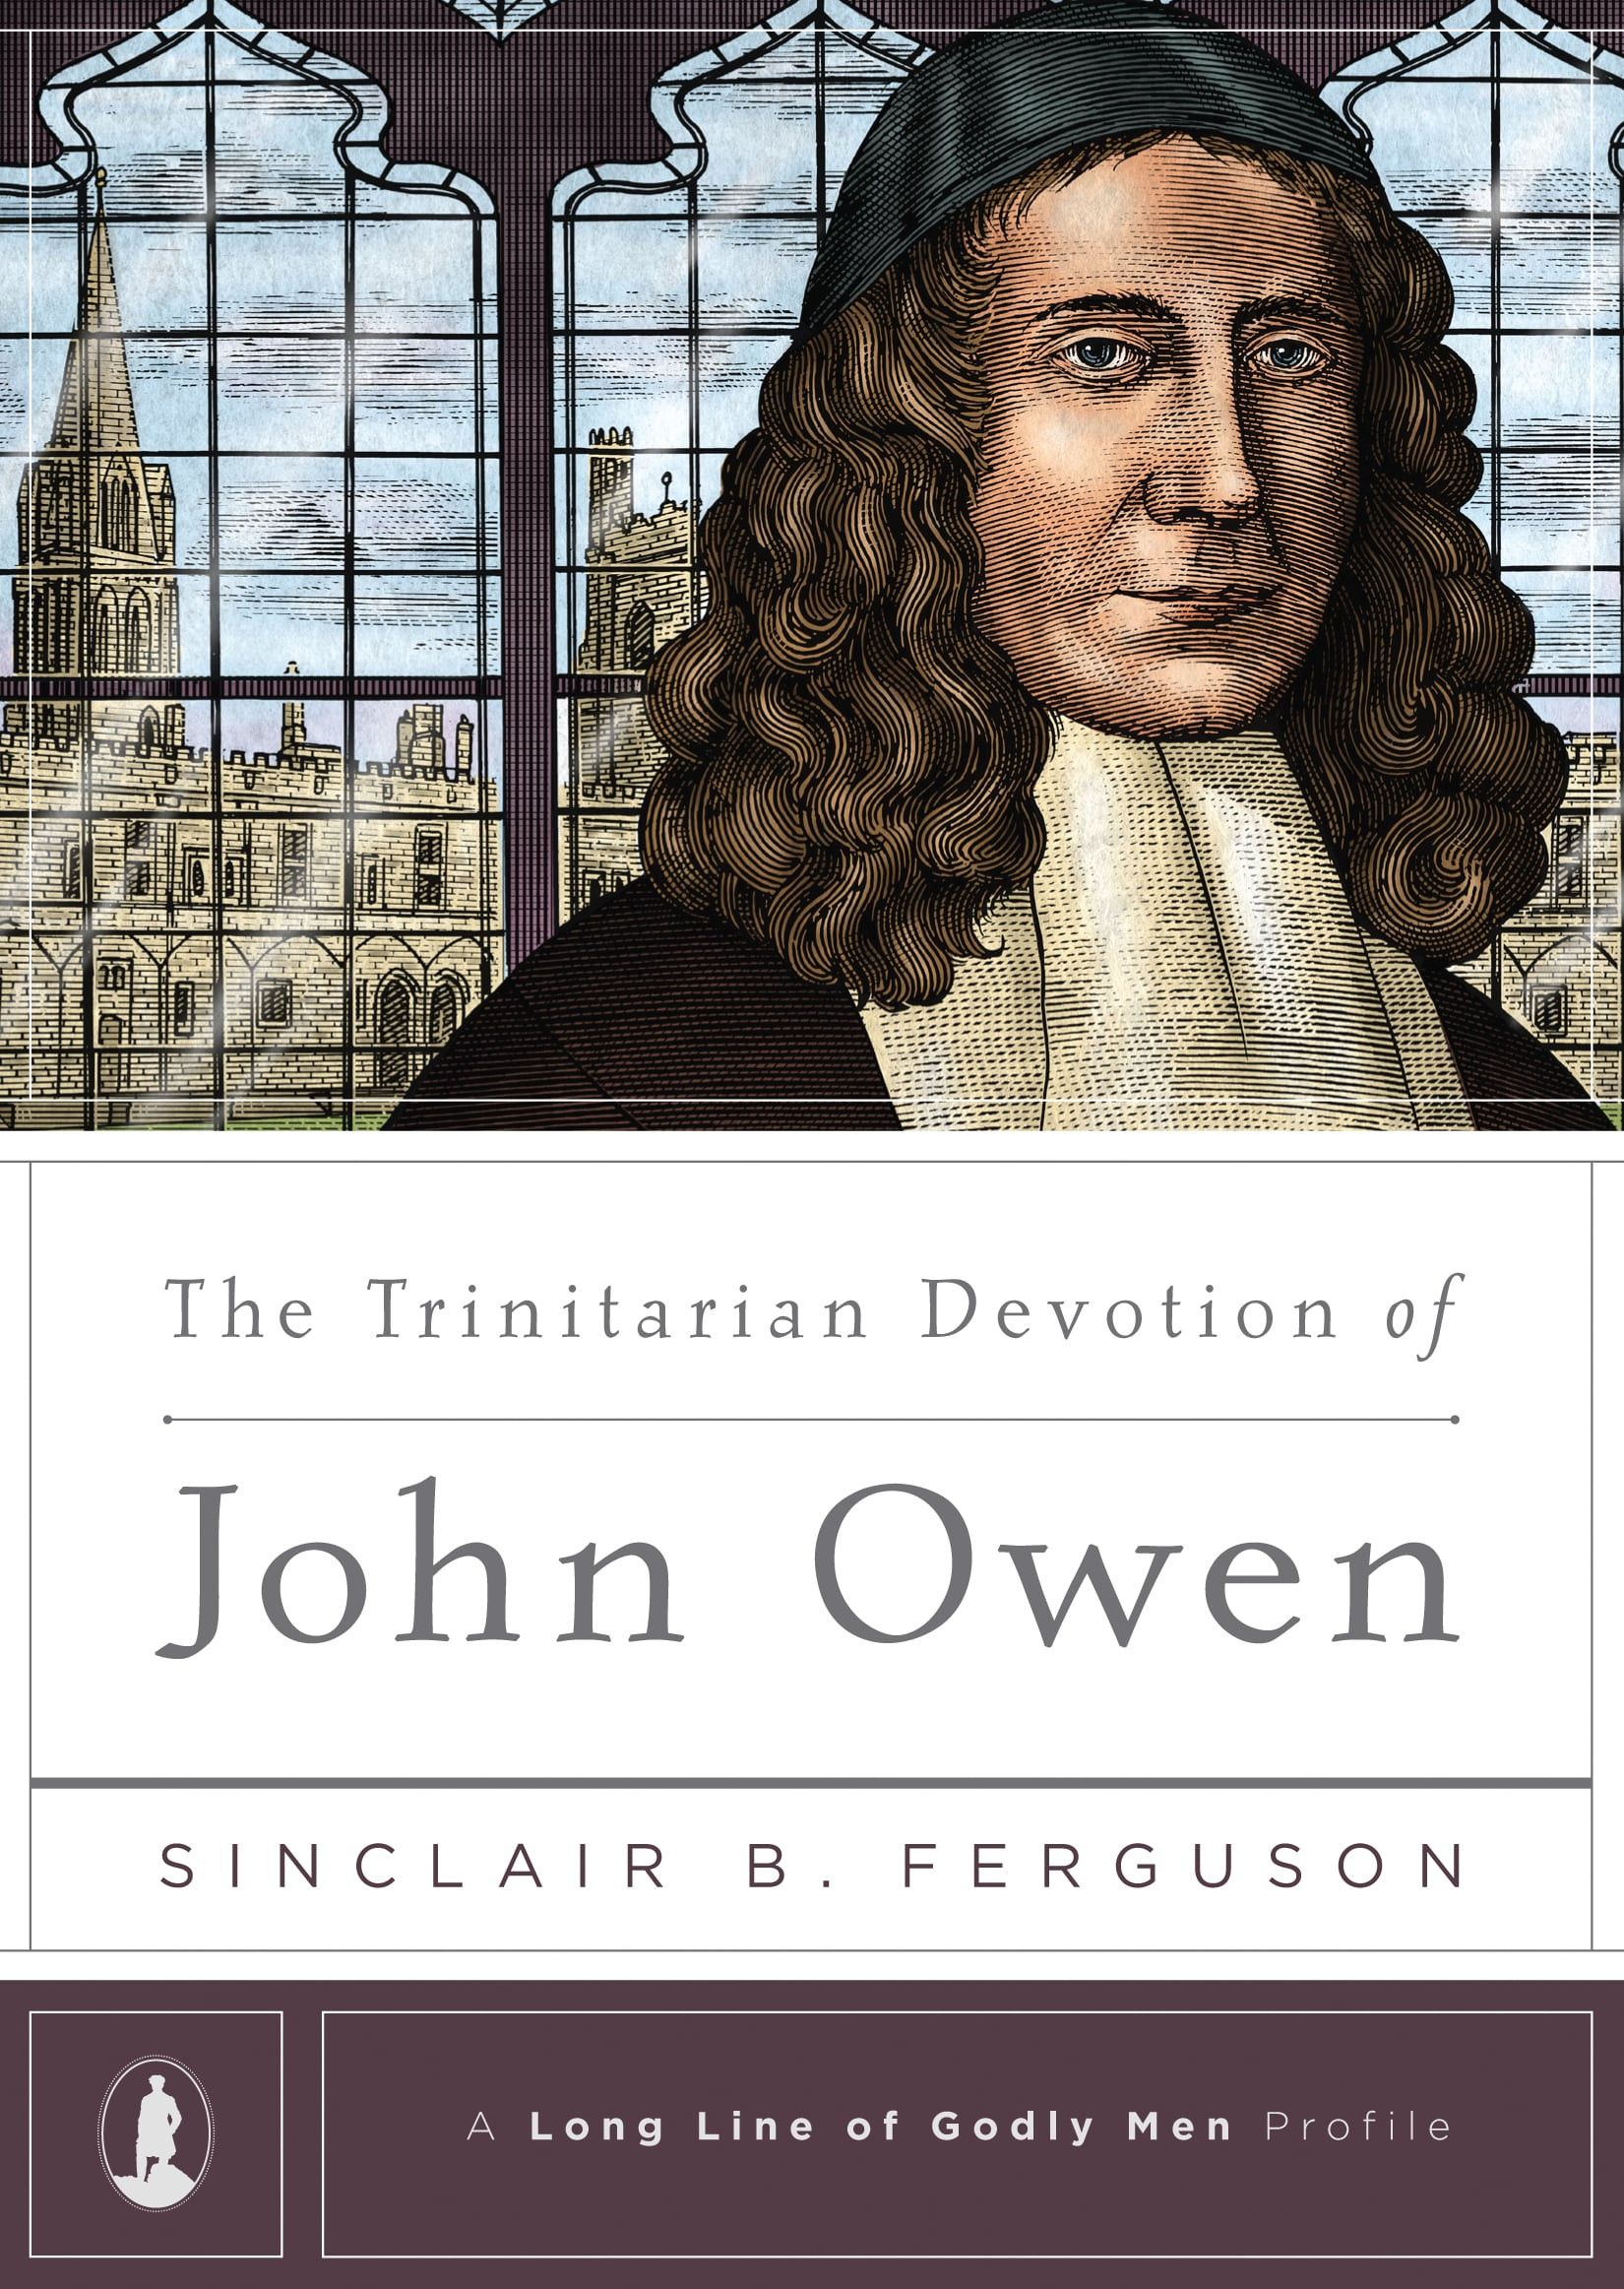 Image result for The Trinitarian Devotion of John Owen - Sinclair Ferguson